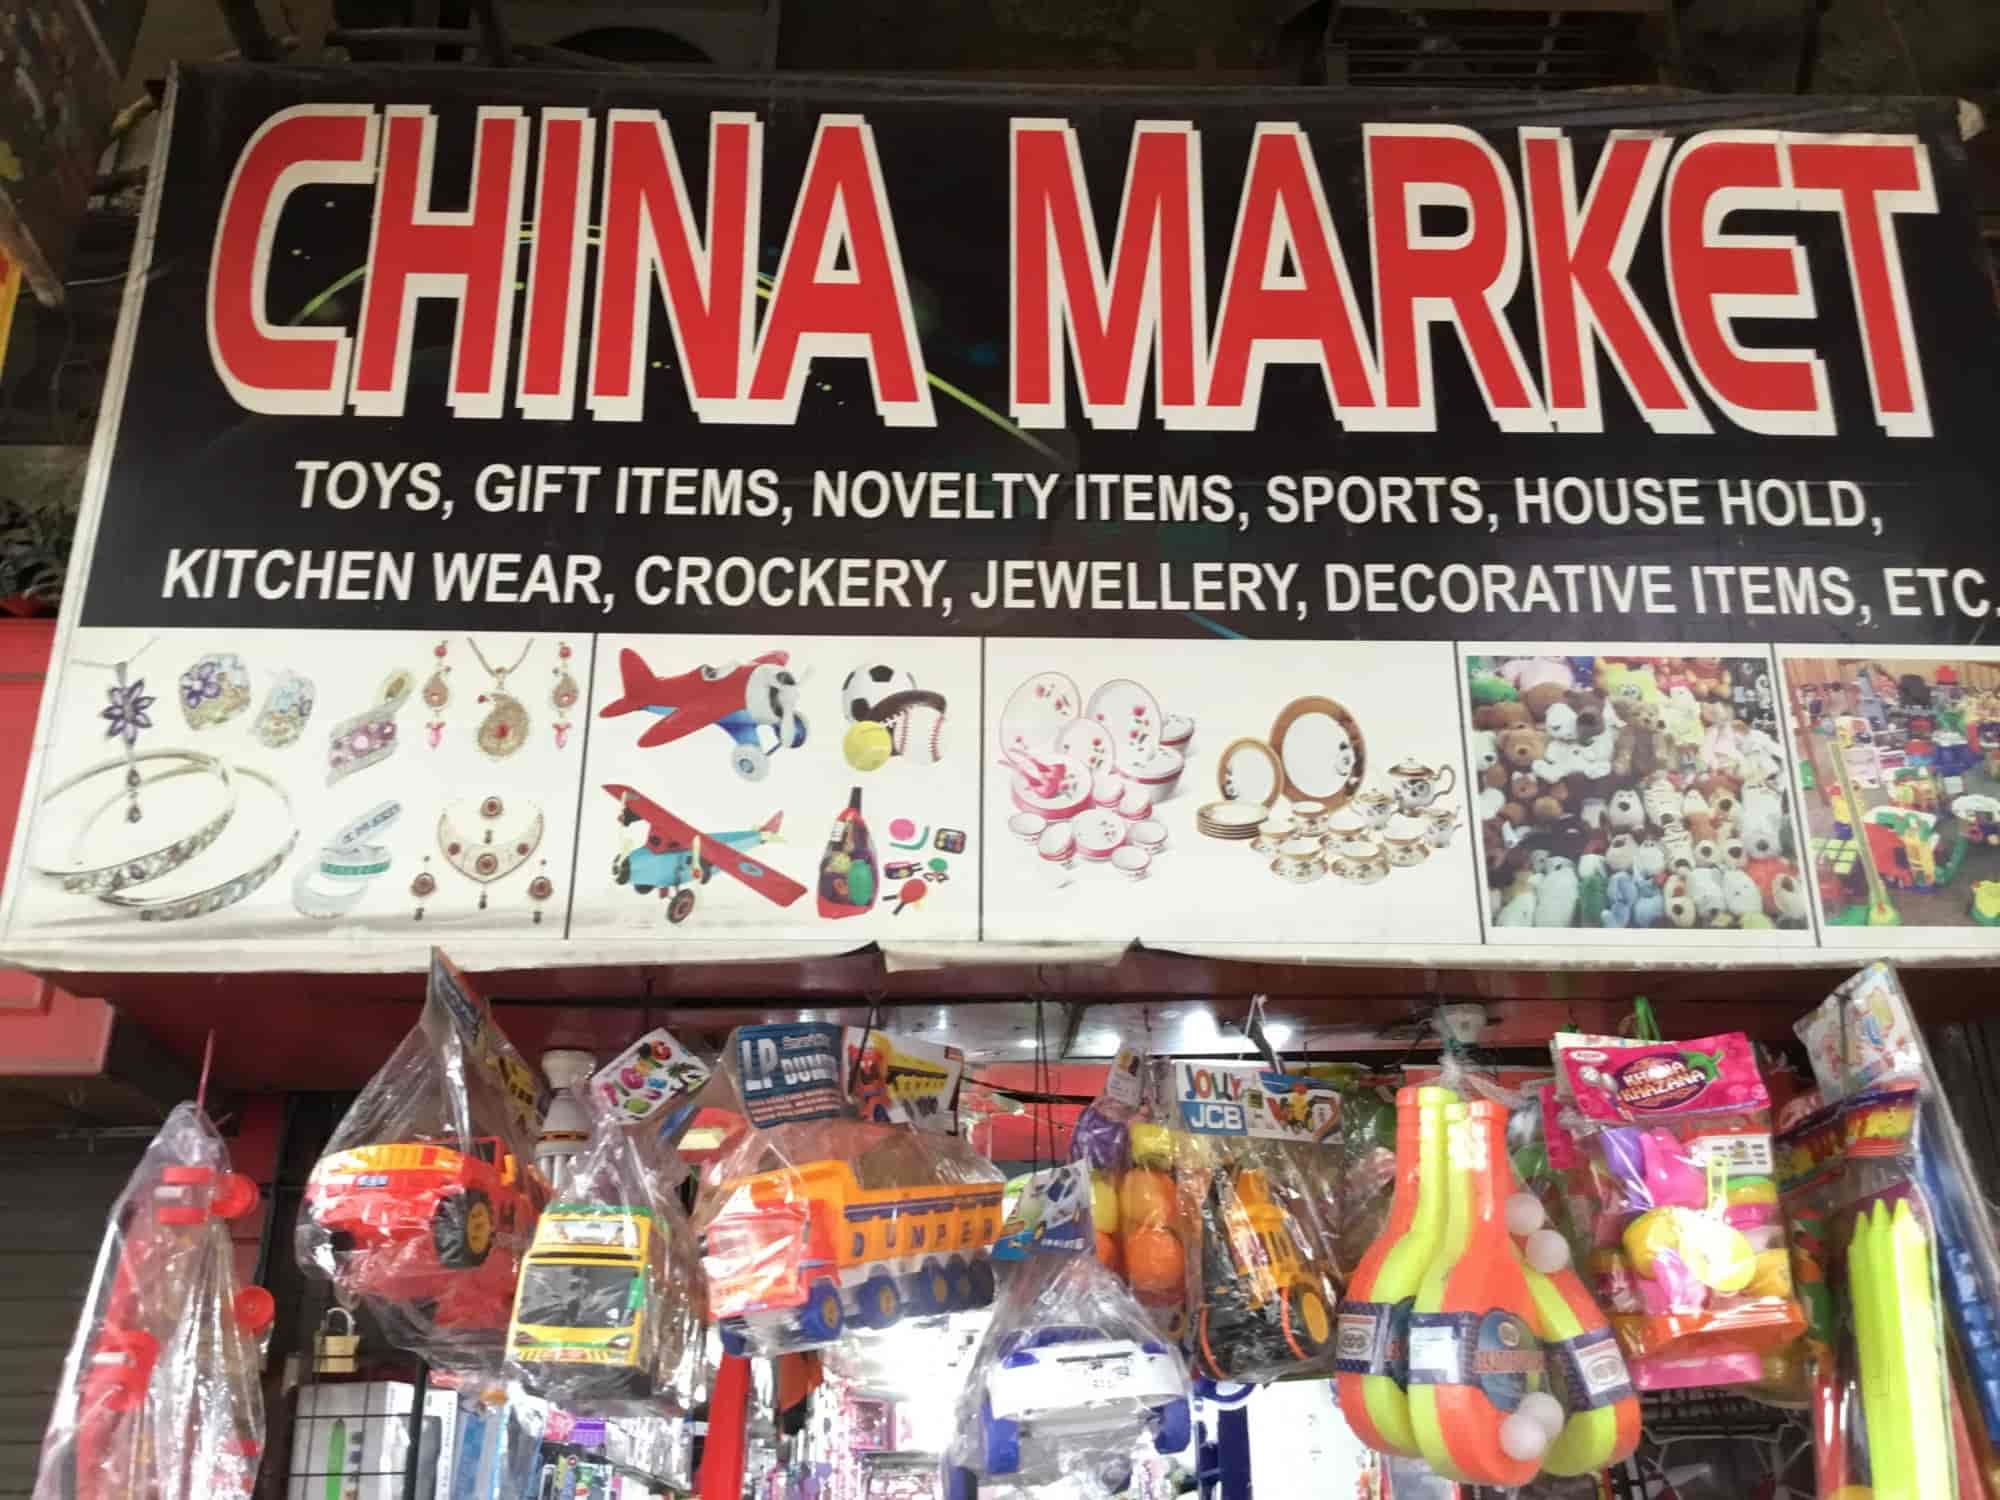 China Market Chandni Chowk Toy Shops In Delhi Justdial